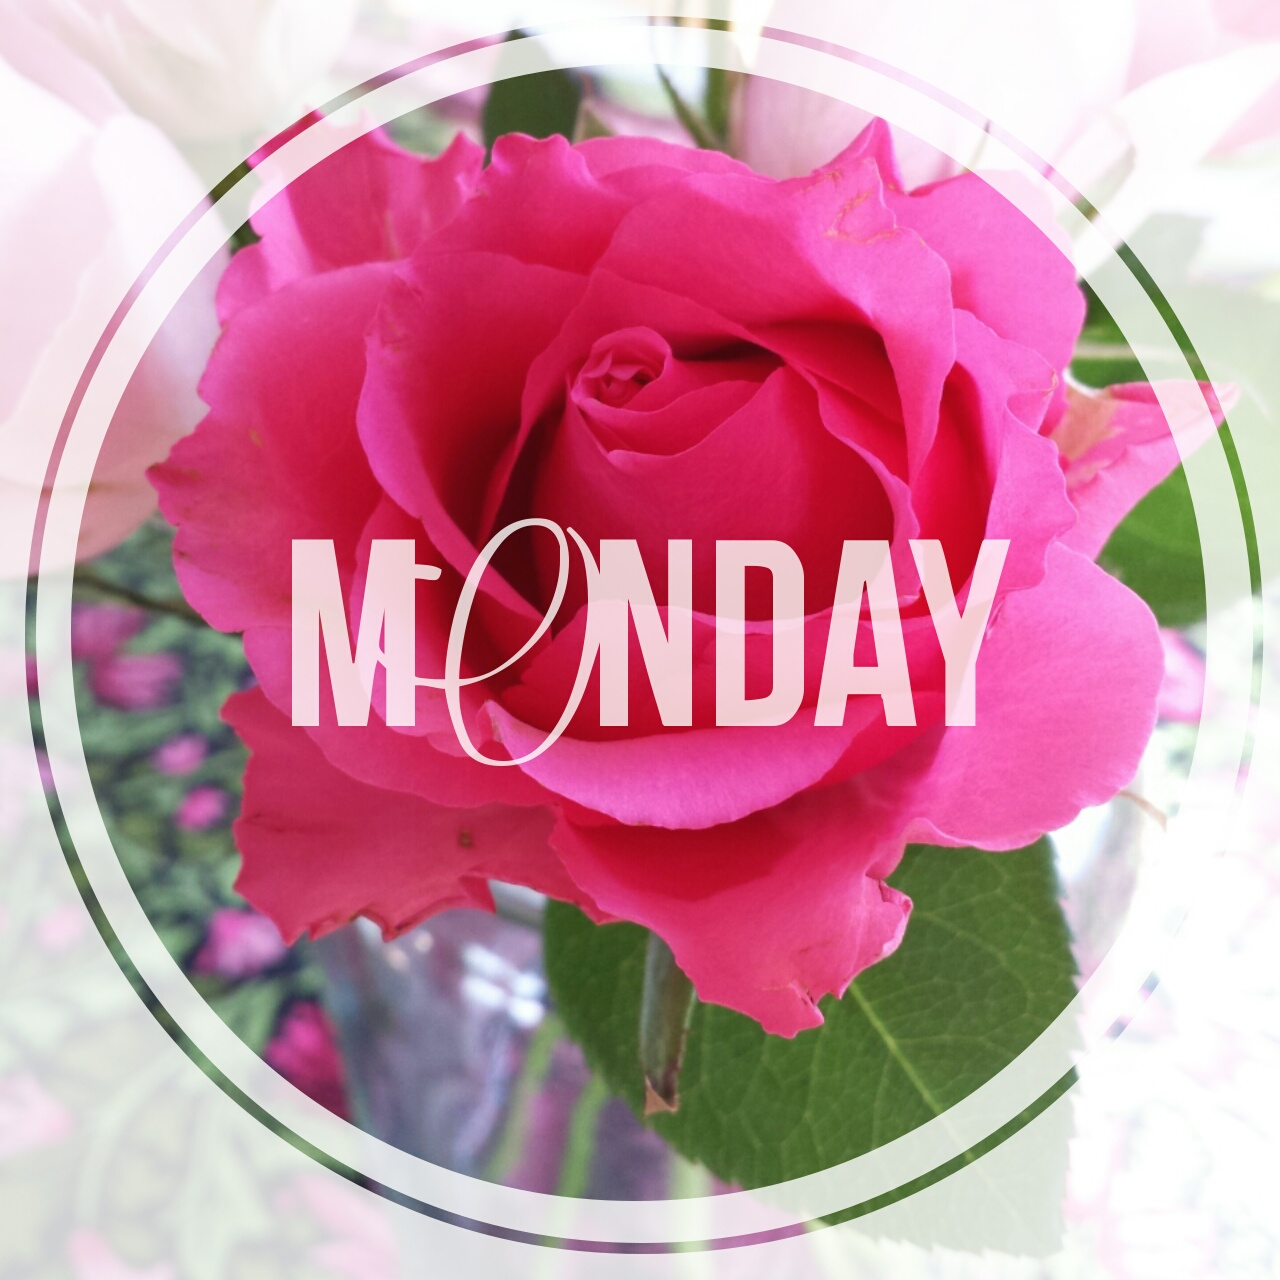 edited in rhonna designs app for android, pink rose, monday, dear jessie